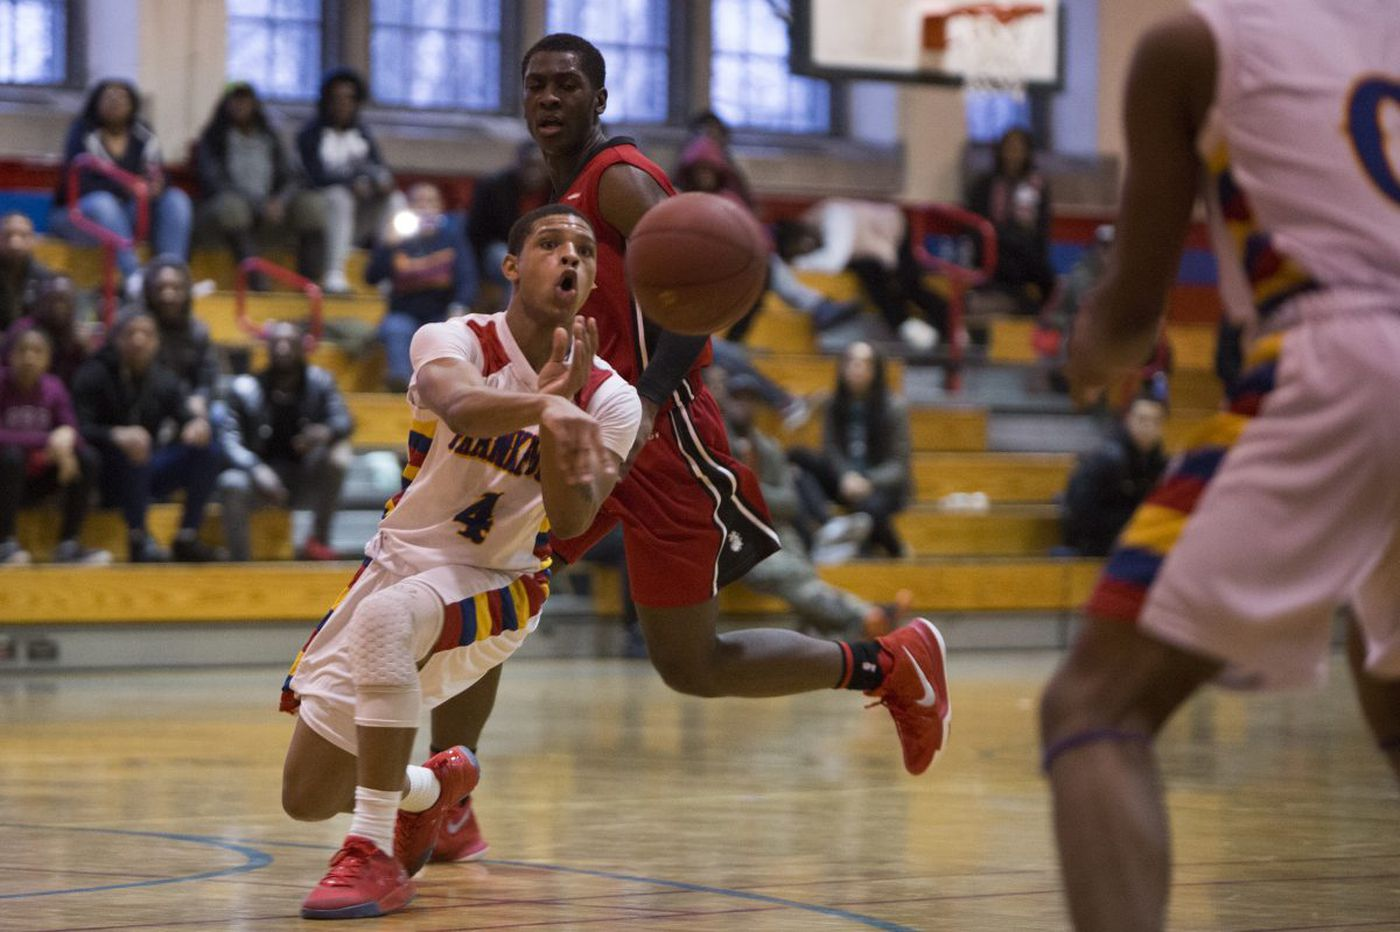 Shafee Cosby's clutch free throws help Frankford escape Gratz